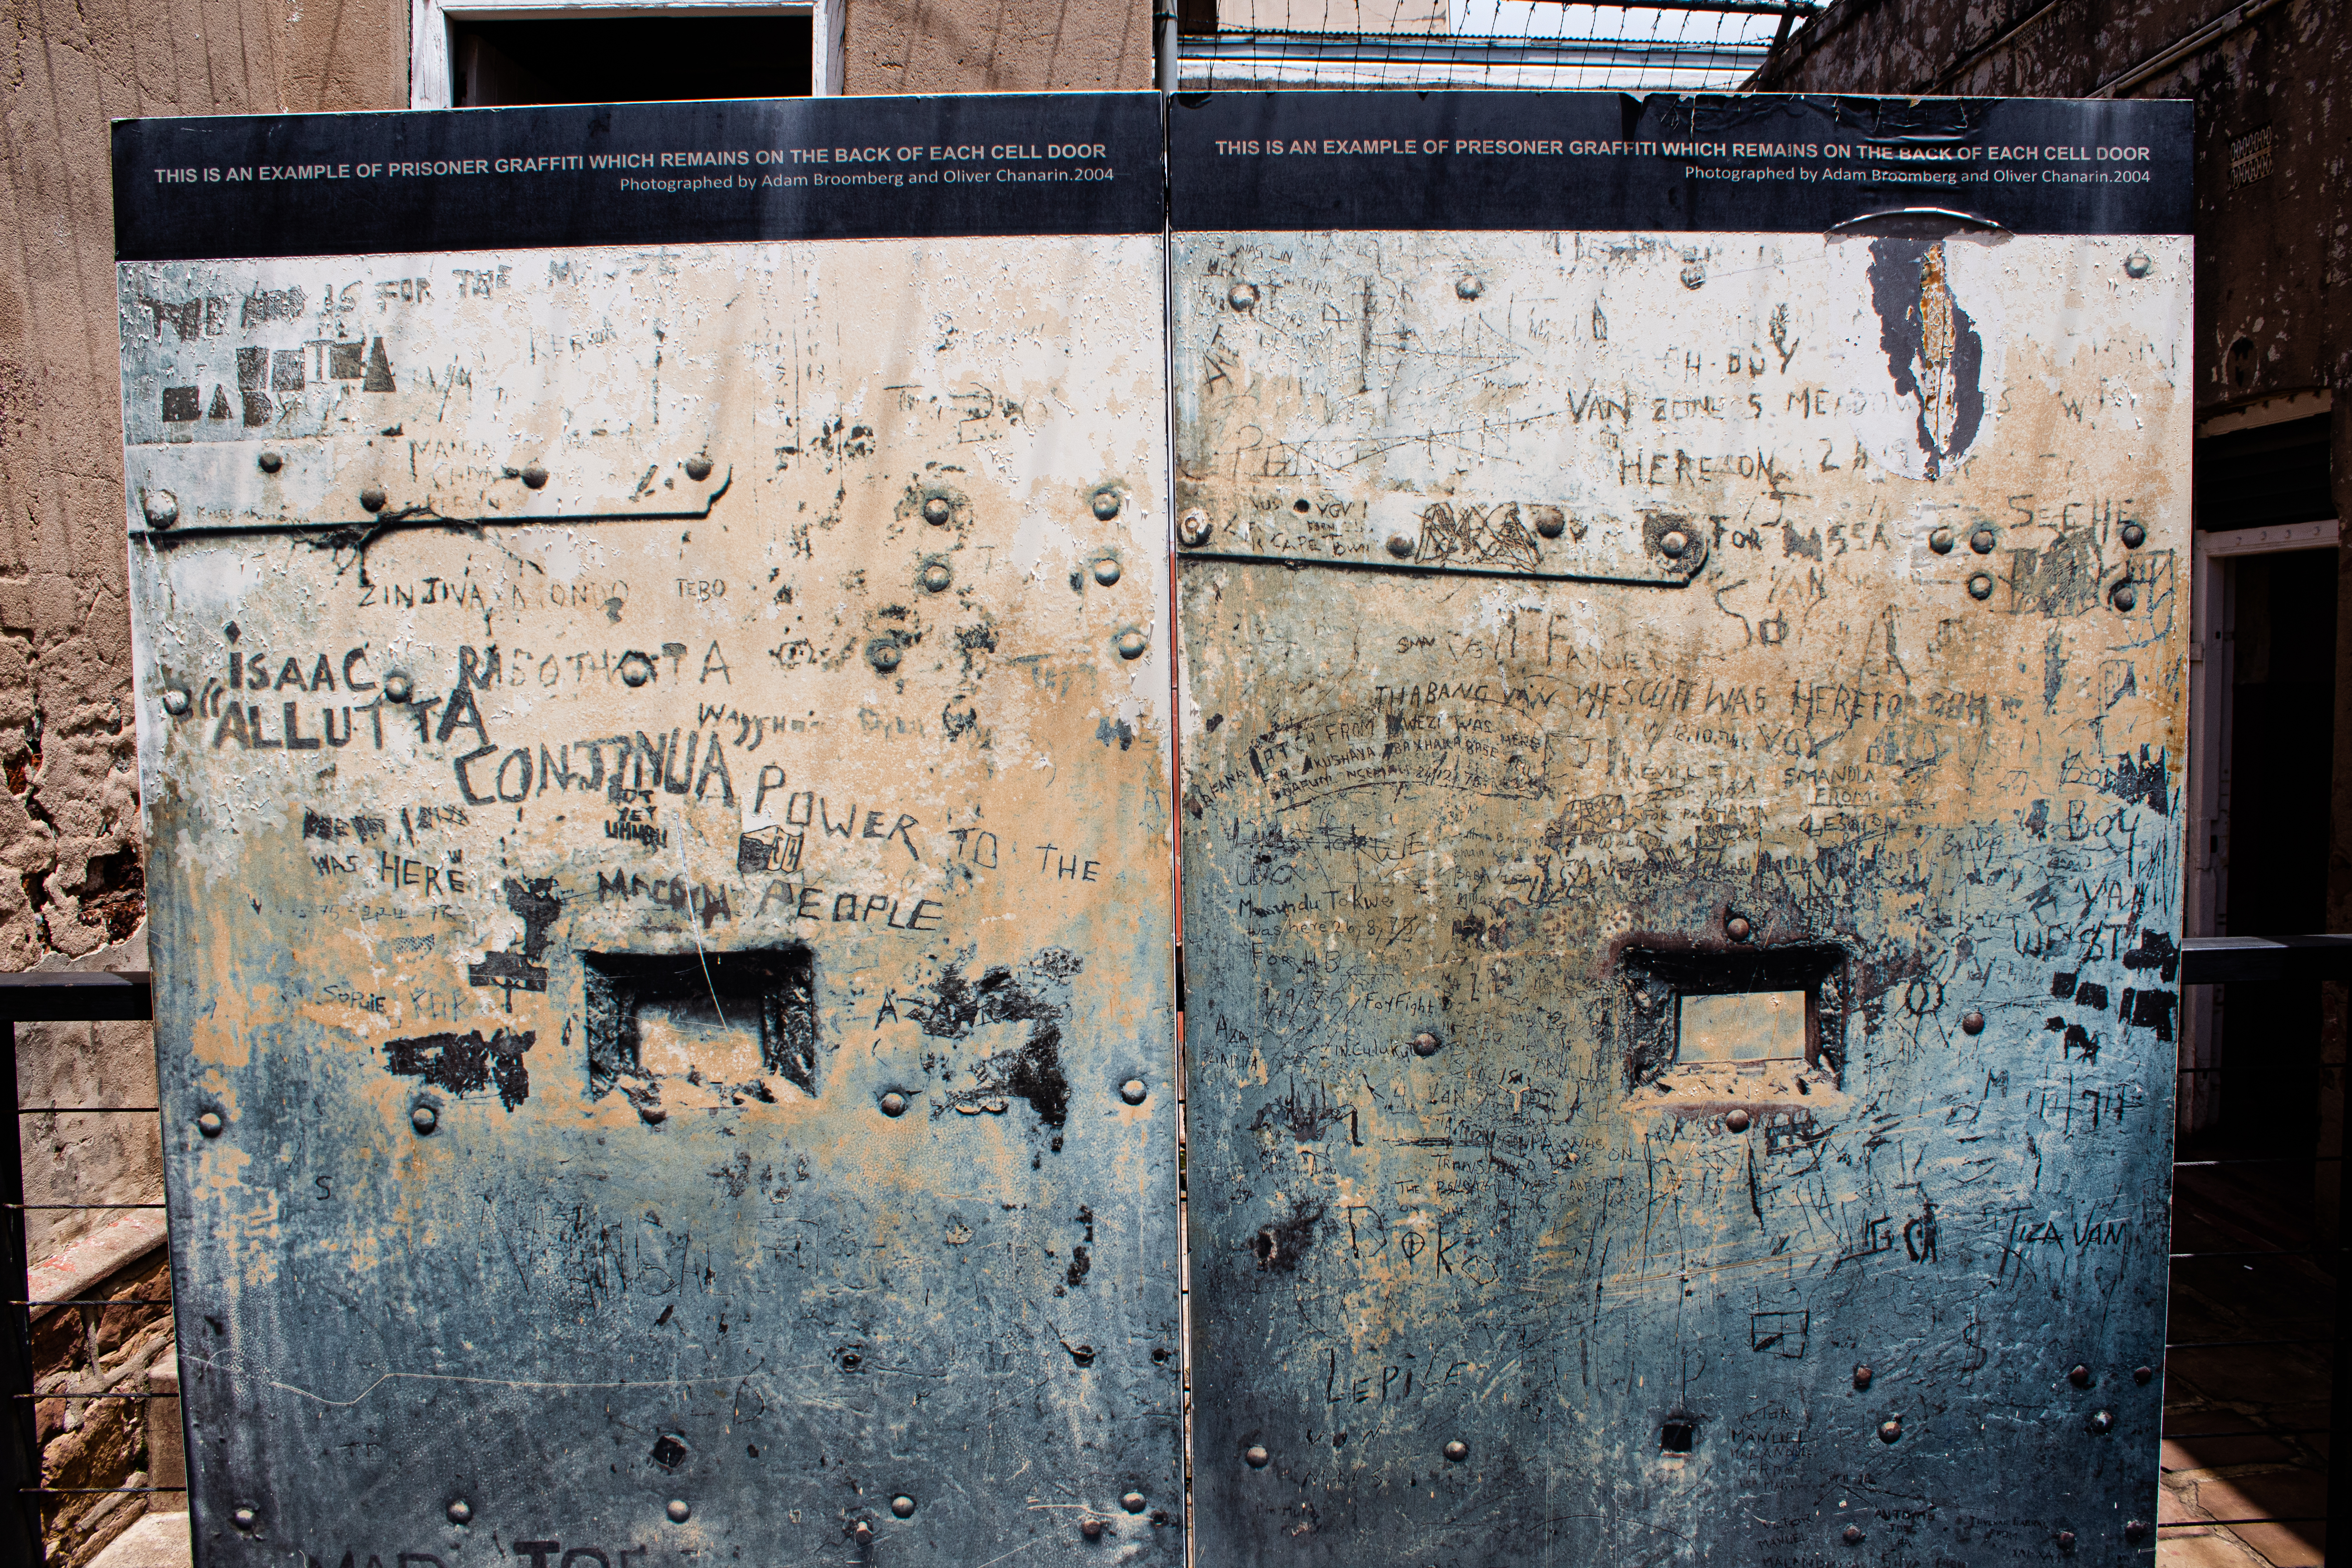 Image of original graffiti created by the prisioners